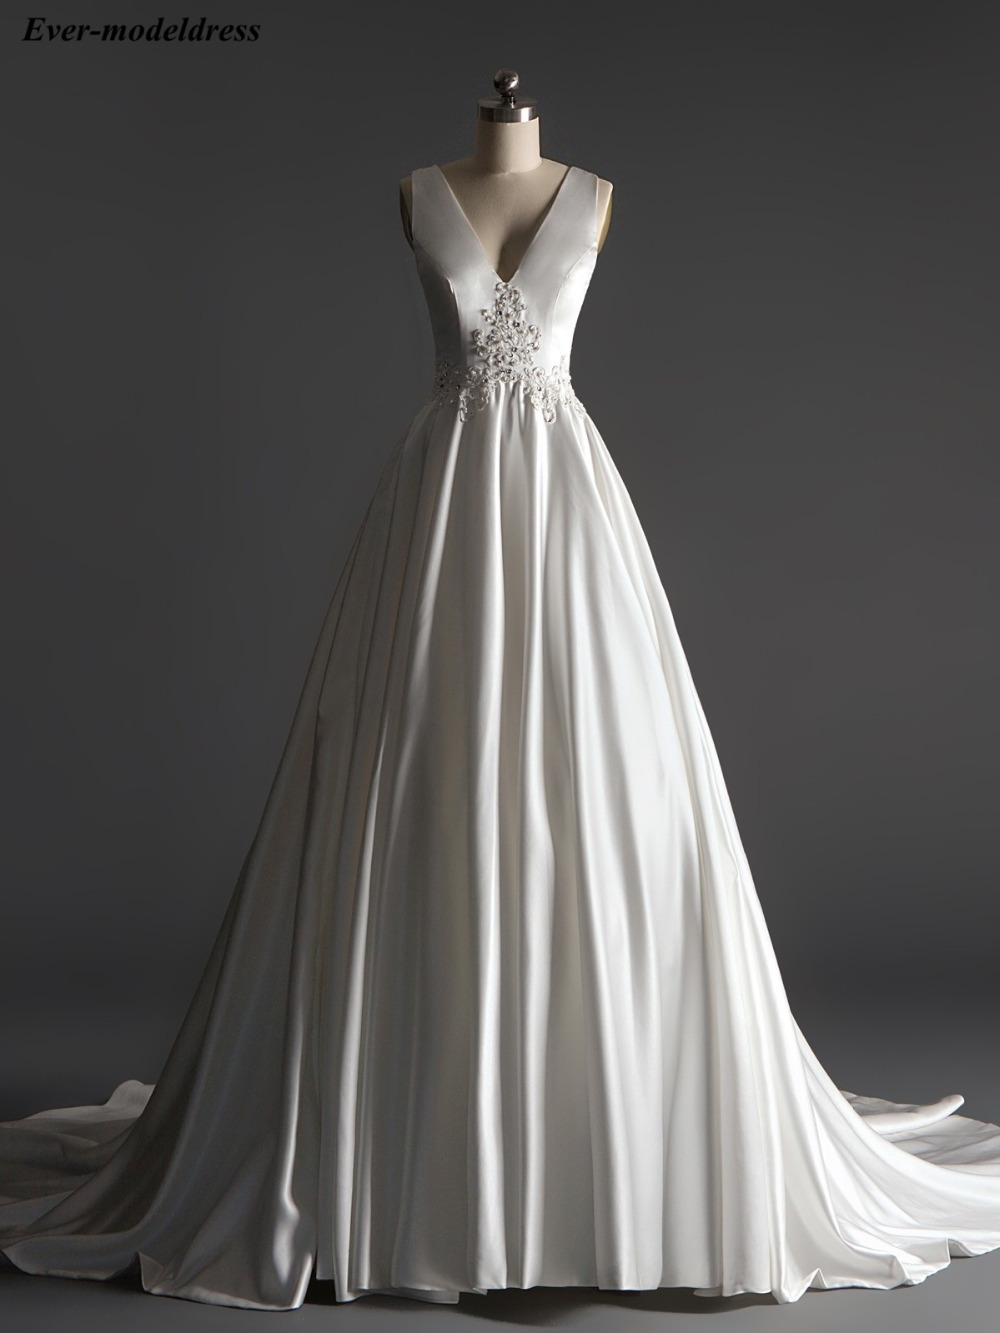 Modest Simple Wedding Dresses Satin Lace Appliques Beaded Sequins Pearls Back Sweep Train A-Line Bridal Gowns Robe De Mariee